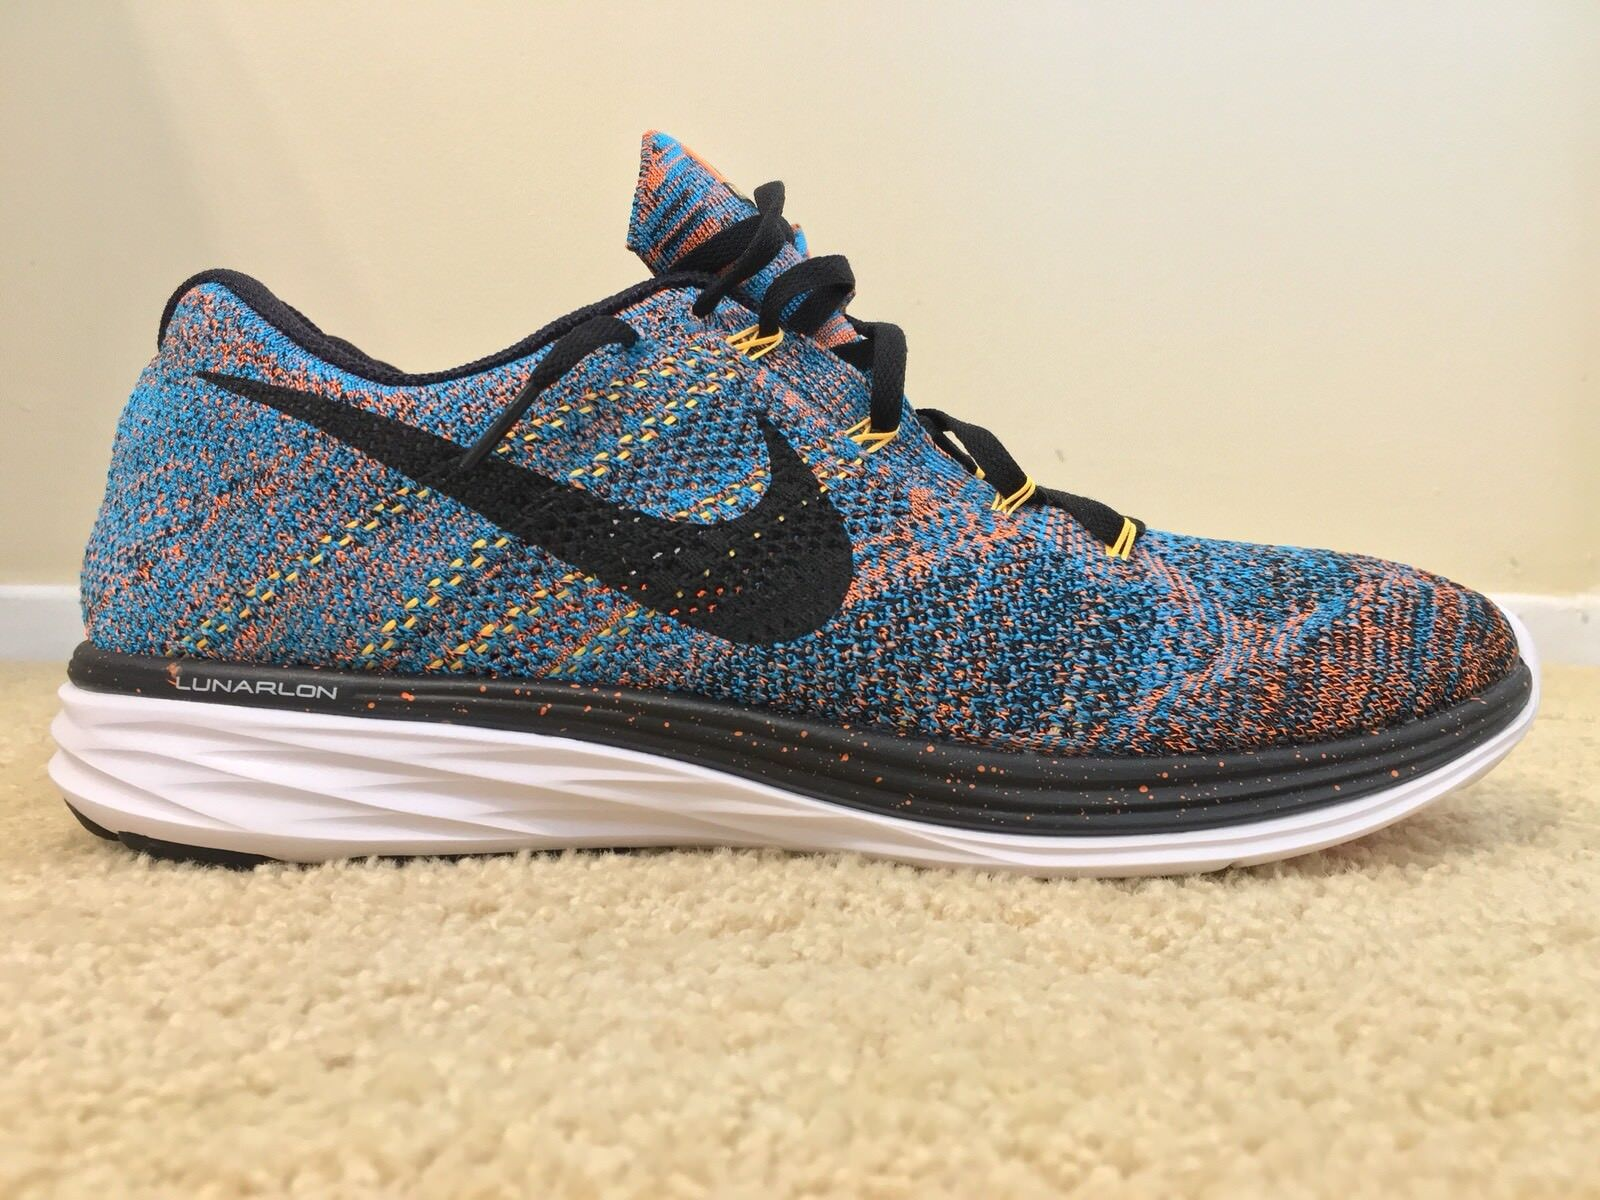 NIKE FLYKNIT LUNAR 3 MULTI COLOR, 698181-801, Men's Running Shoes, Size 13